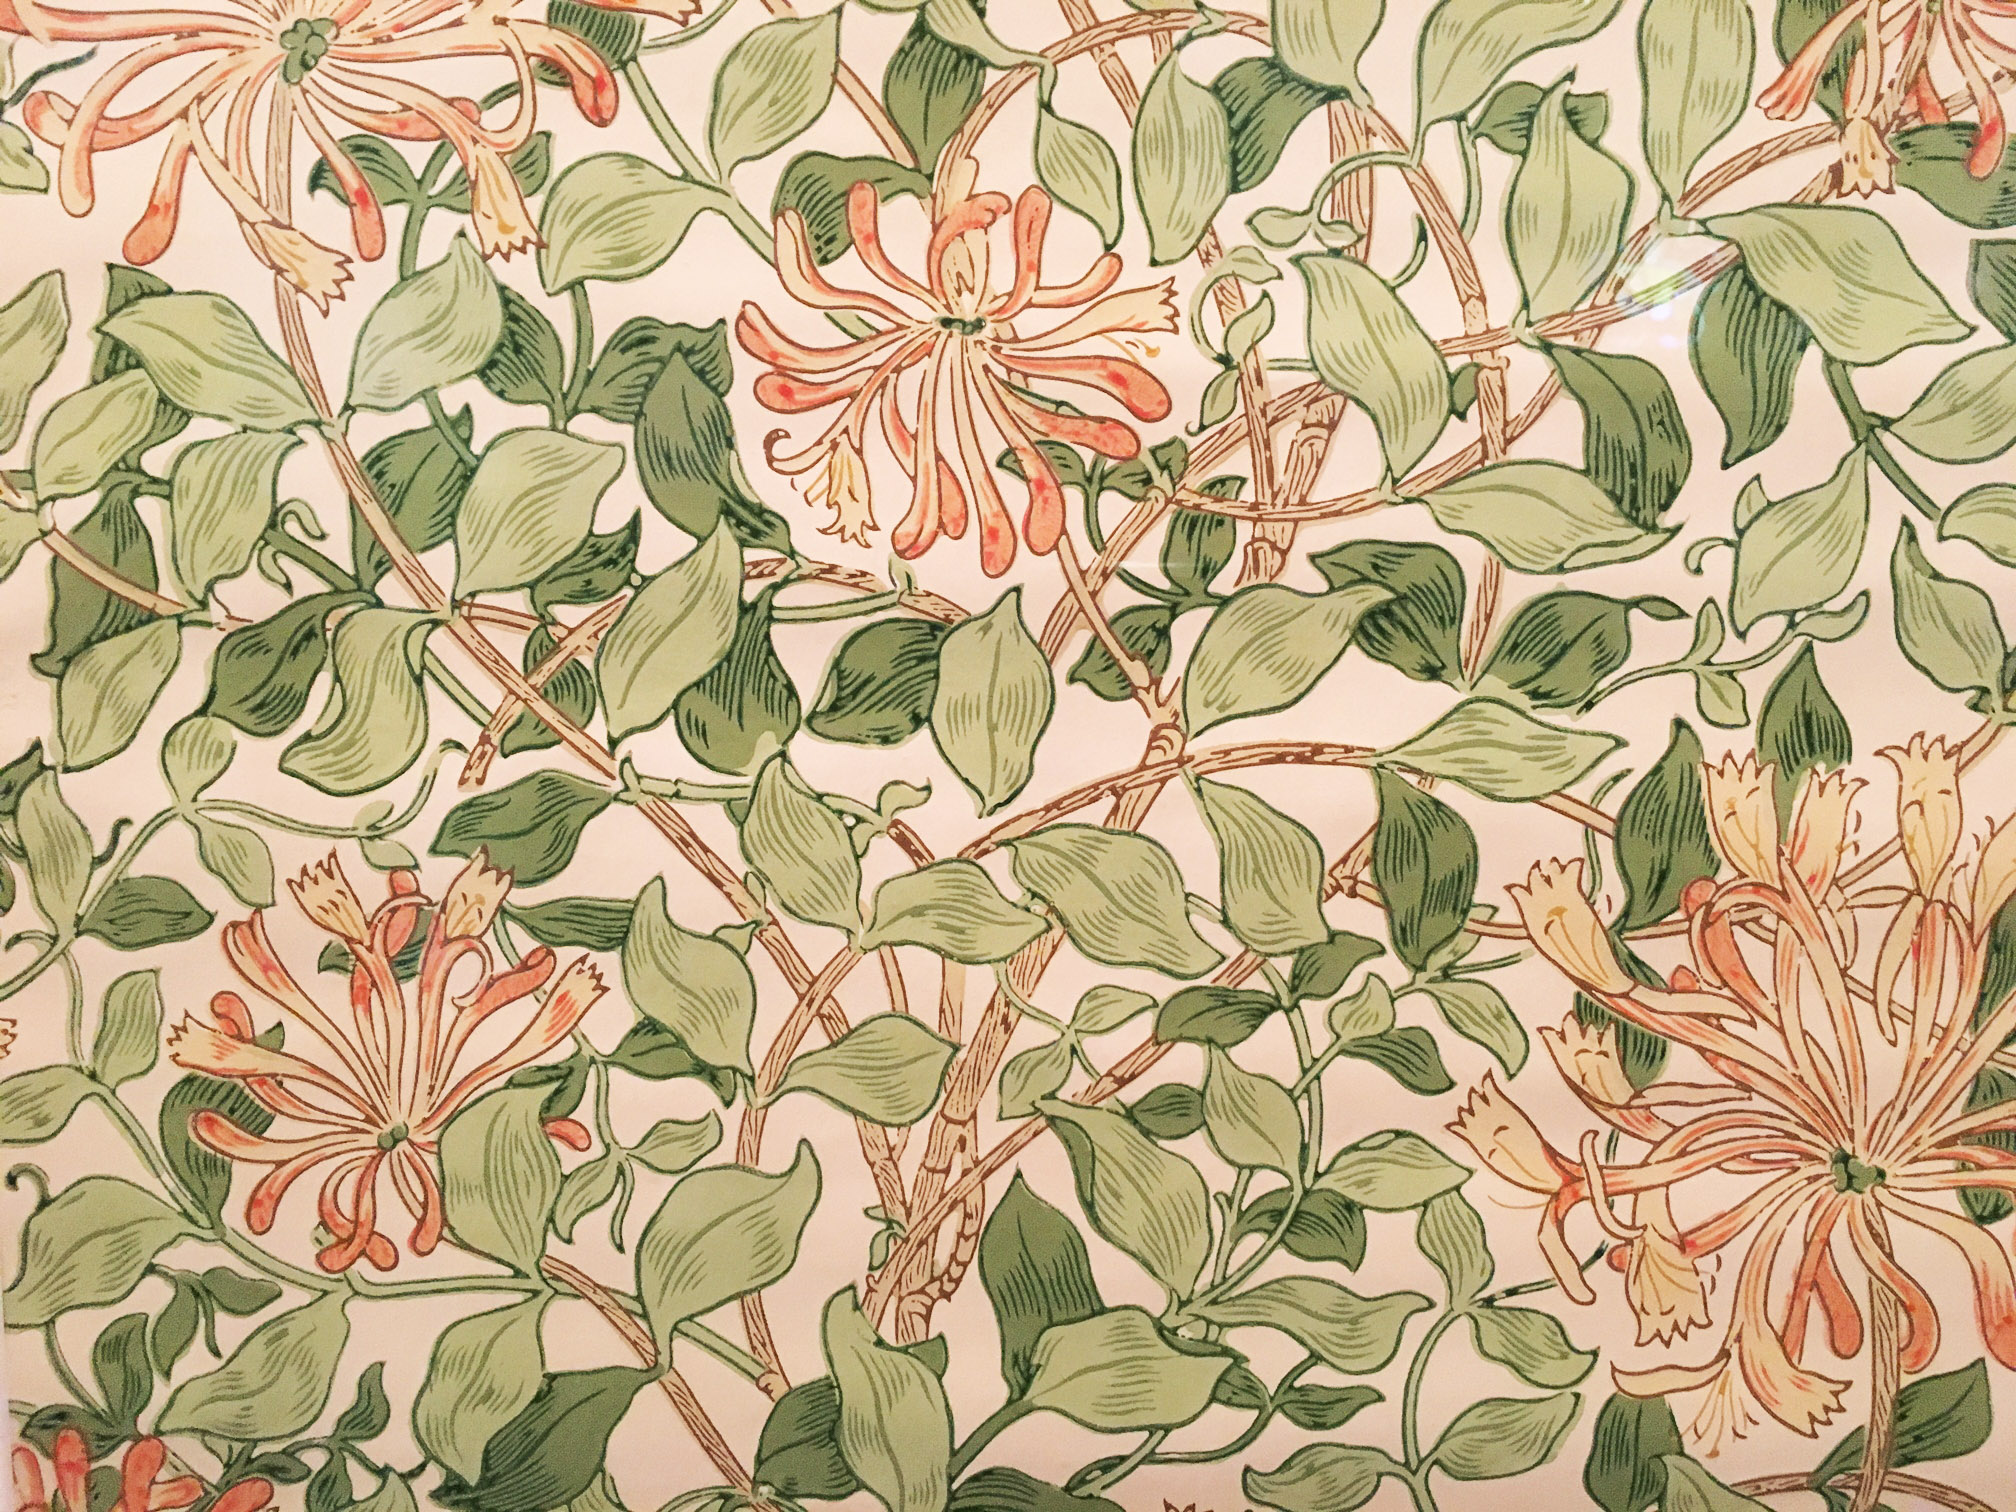 William-Morris-Flower-Design